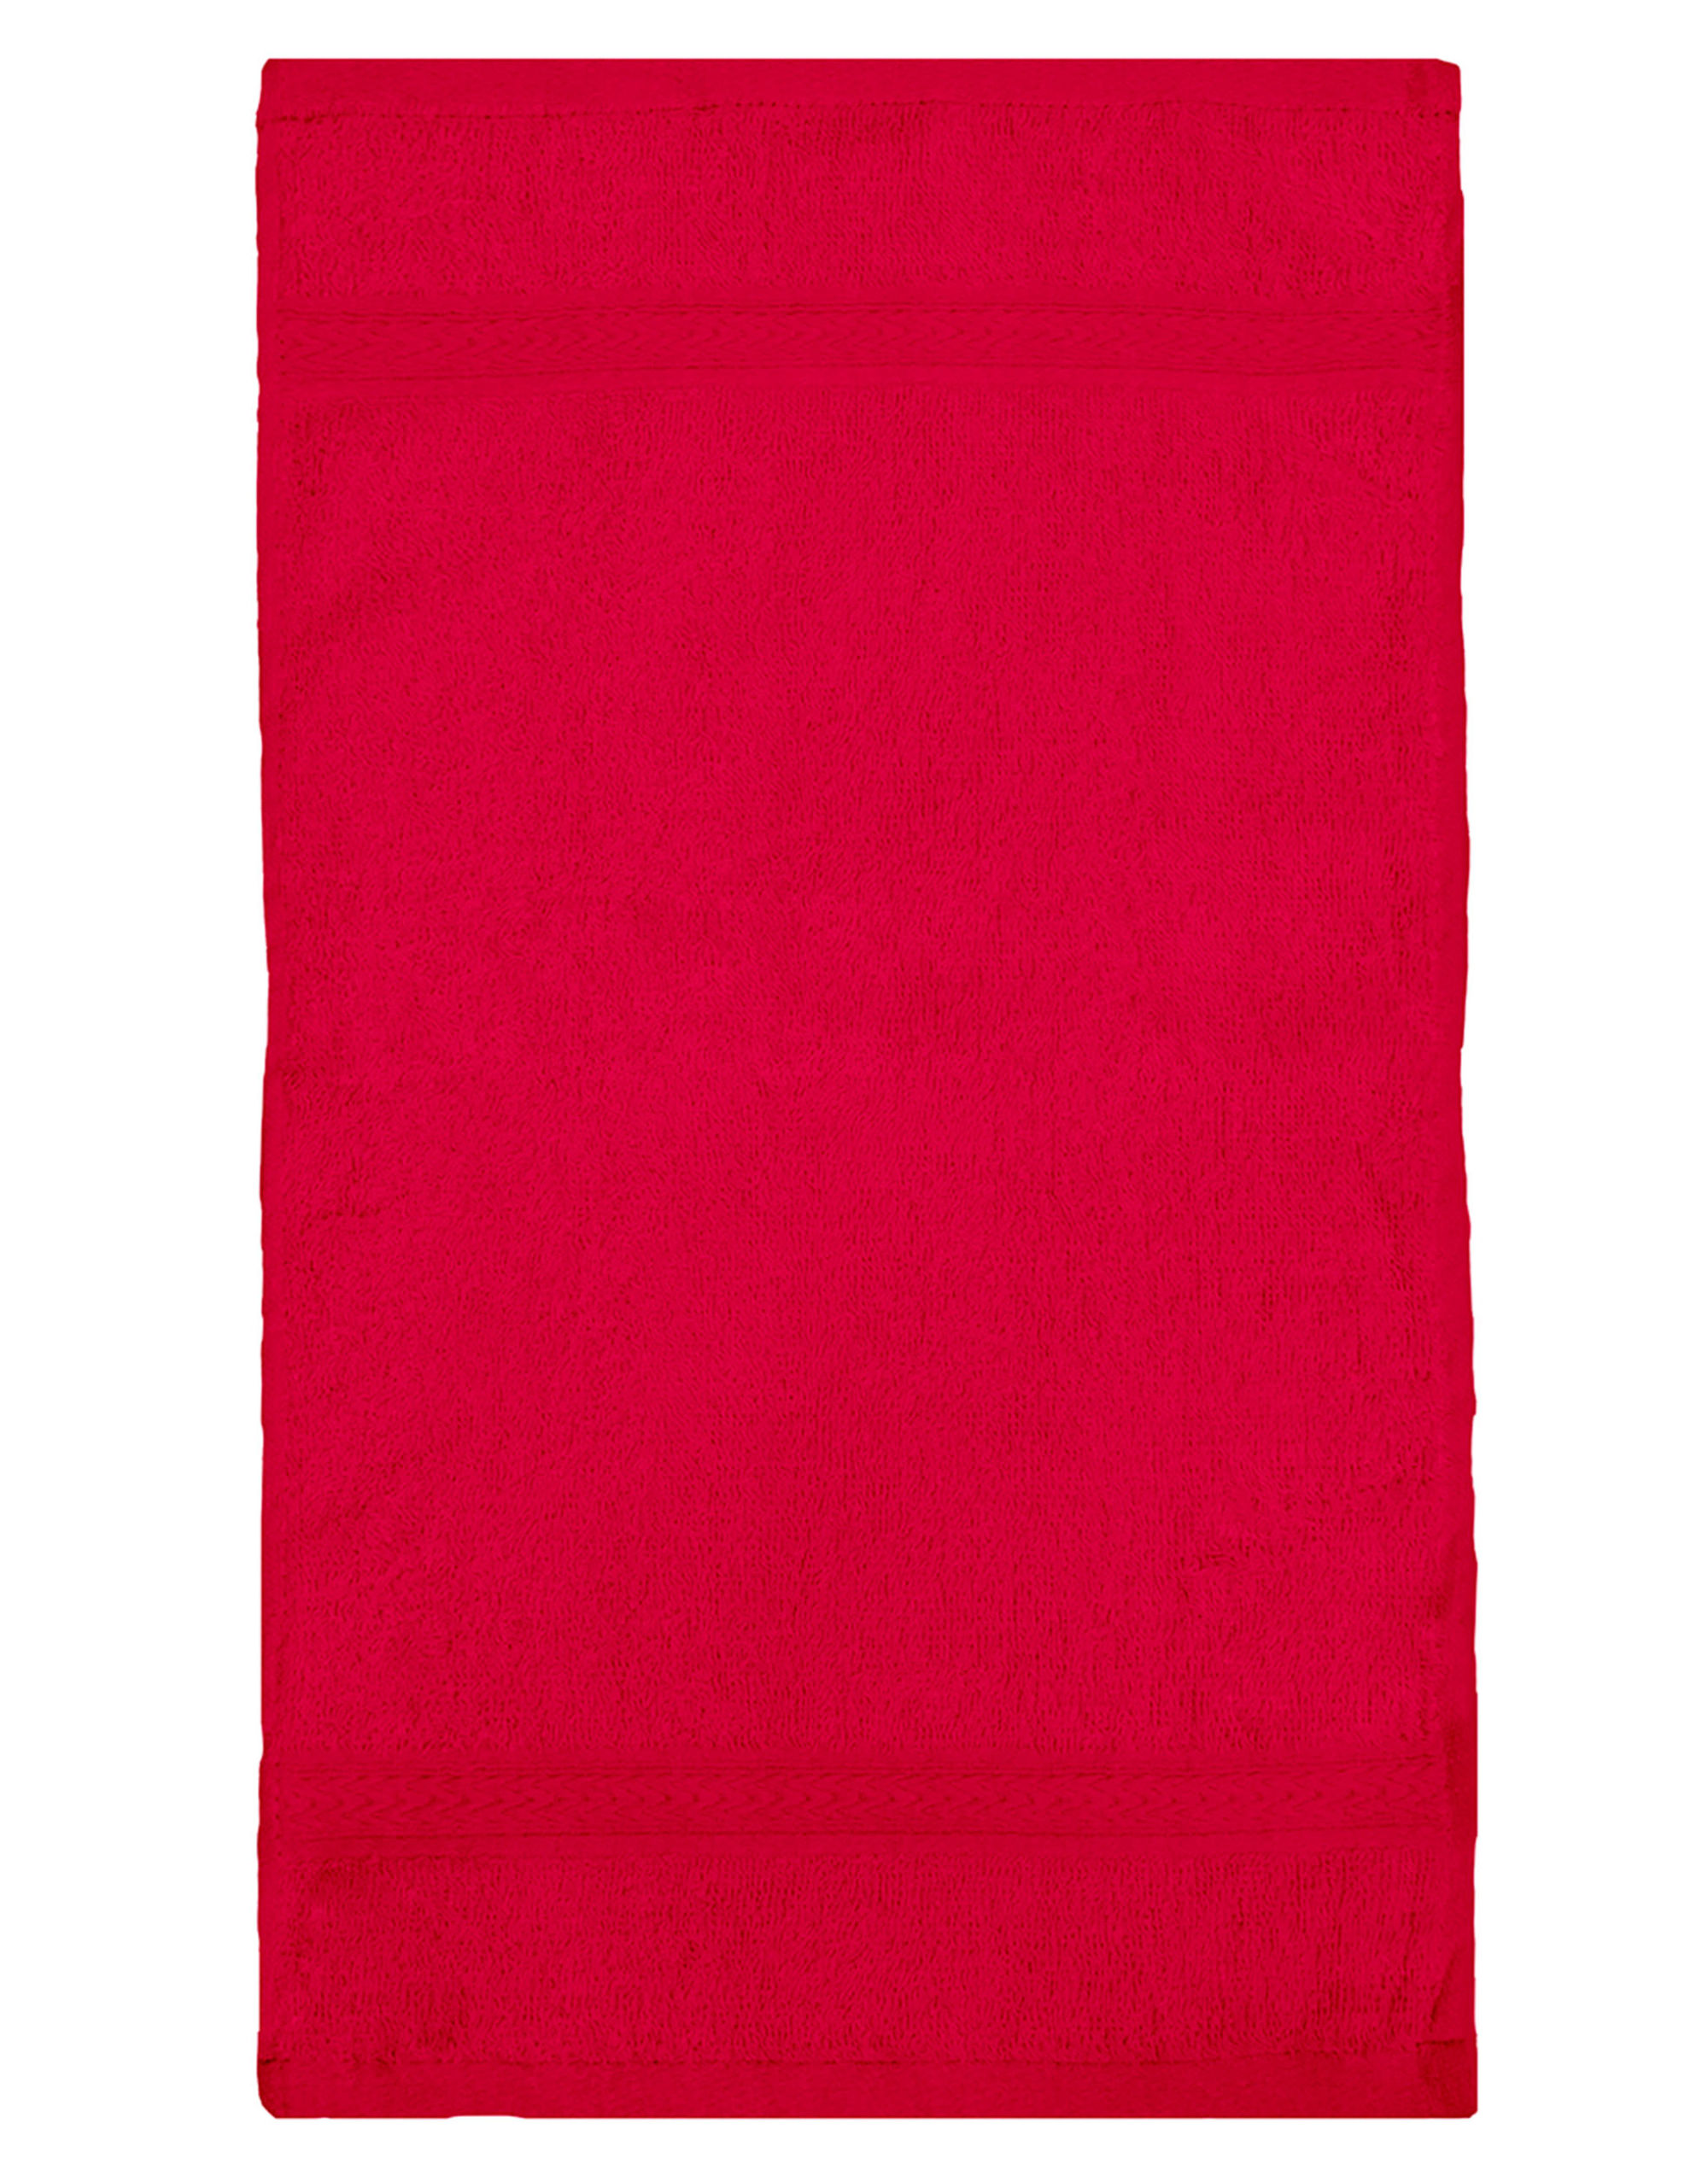 Guest Towels Ebay: Guest Towel Towels, Face Cloths Etc All Sizes And Colours